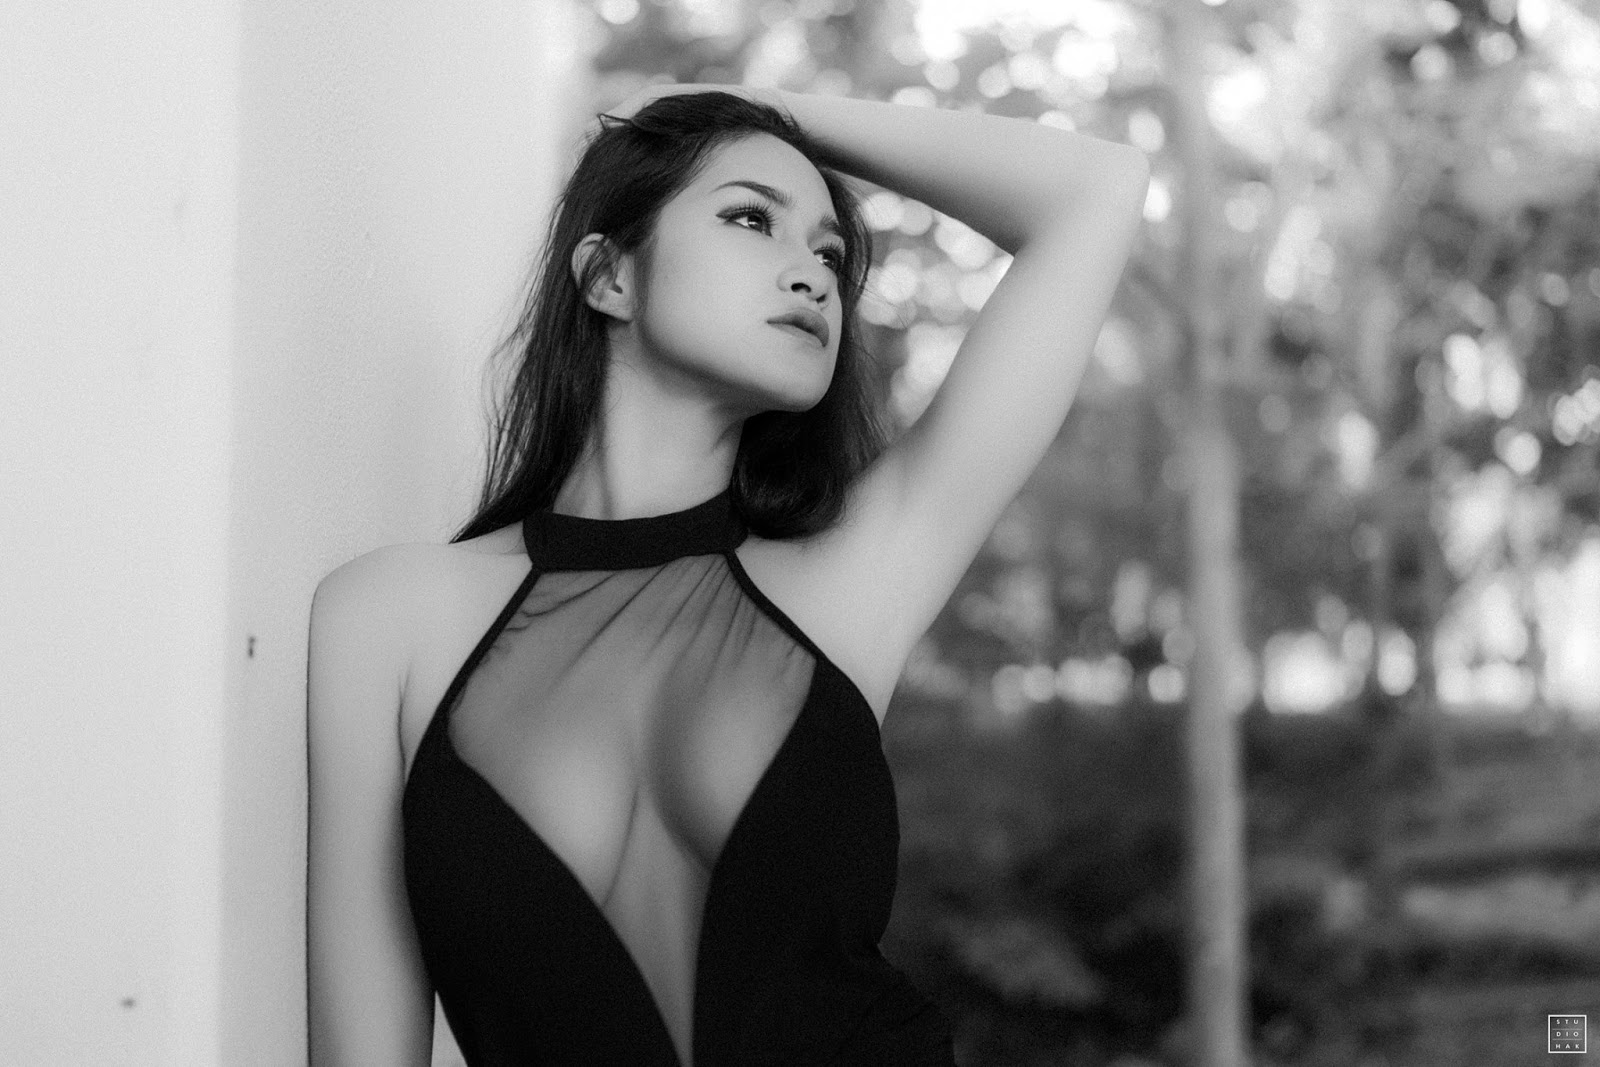 Shwe Eain Si Black And White Fashion Photoshoot By HAK Photography